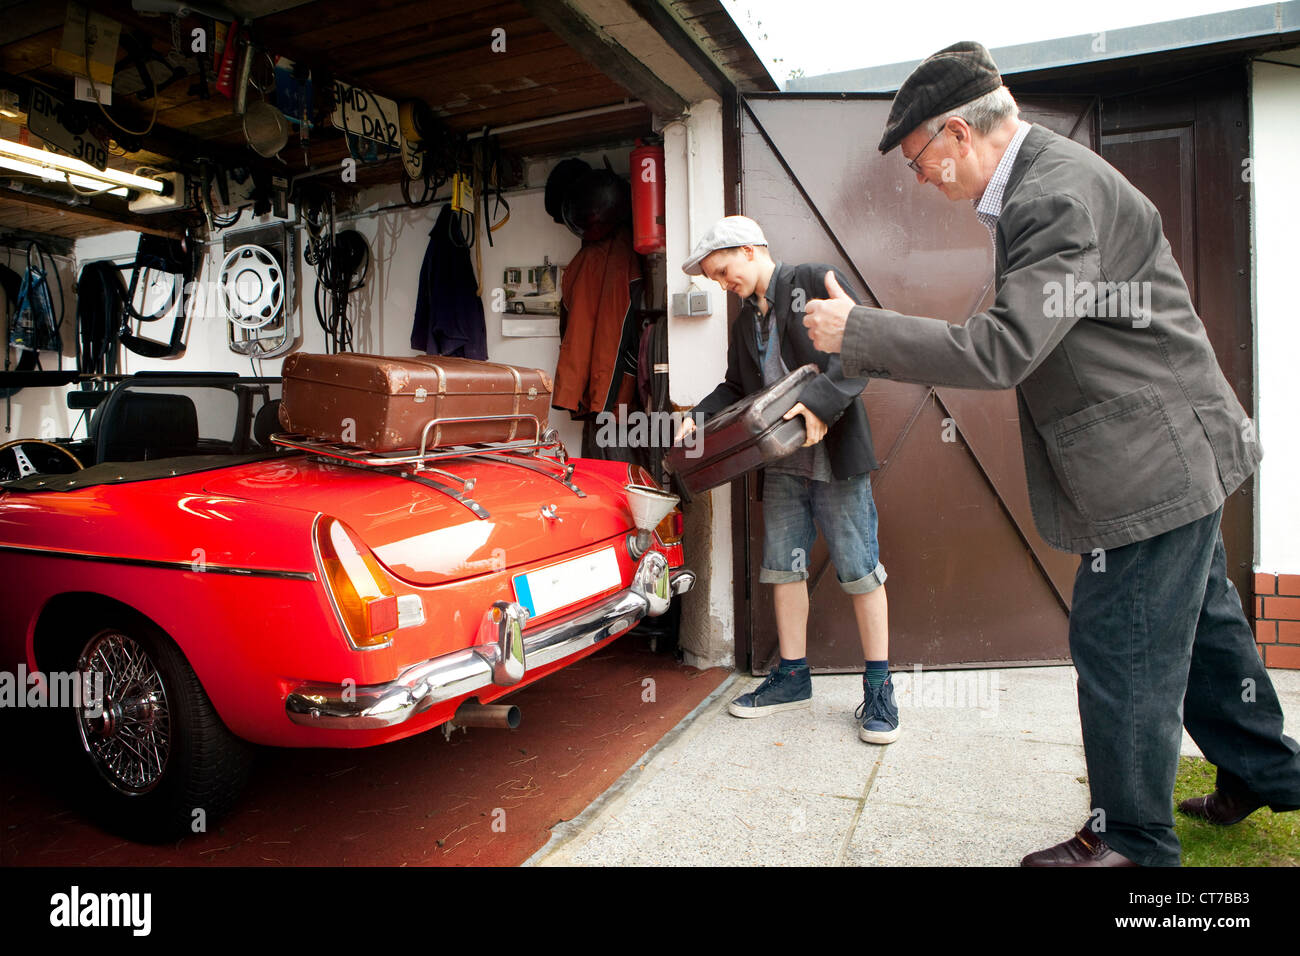 Grandfather and grandson packing vintage car with trunk suitcases in garage - Stock Image